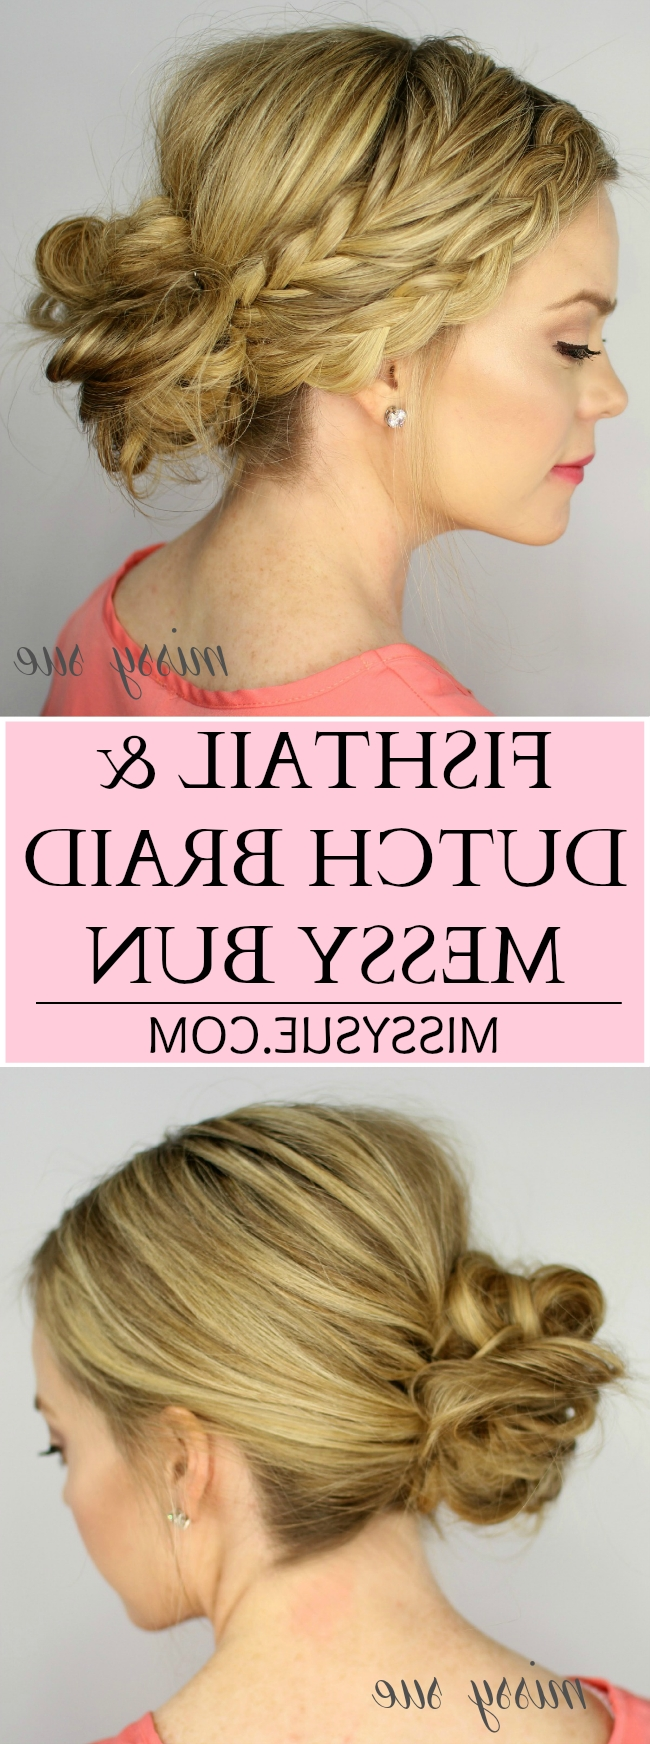 Newest Messy Ponytail Hairstyles With Side Dutch Braid Within Fishtail And Dutch Braid Messy Bun (View 6 of 20)